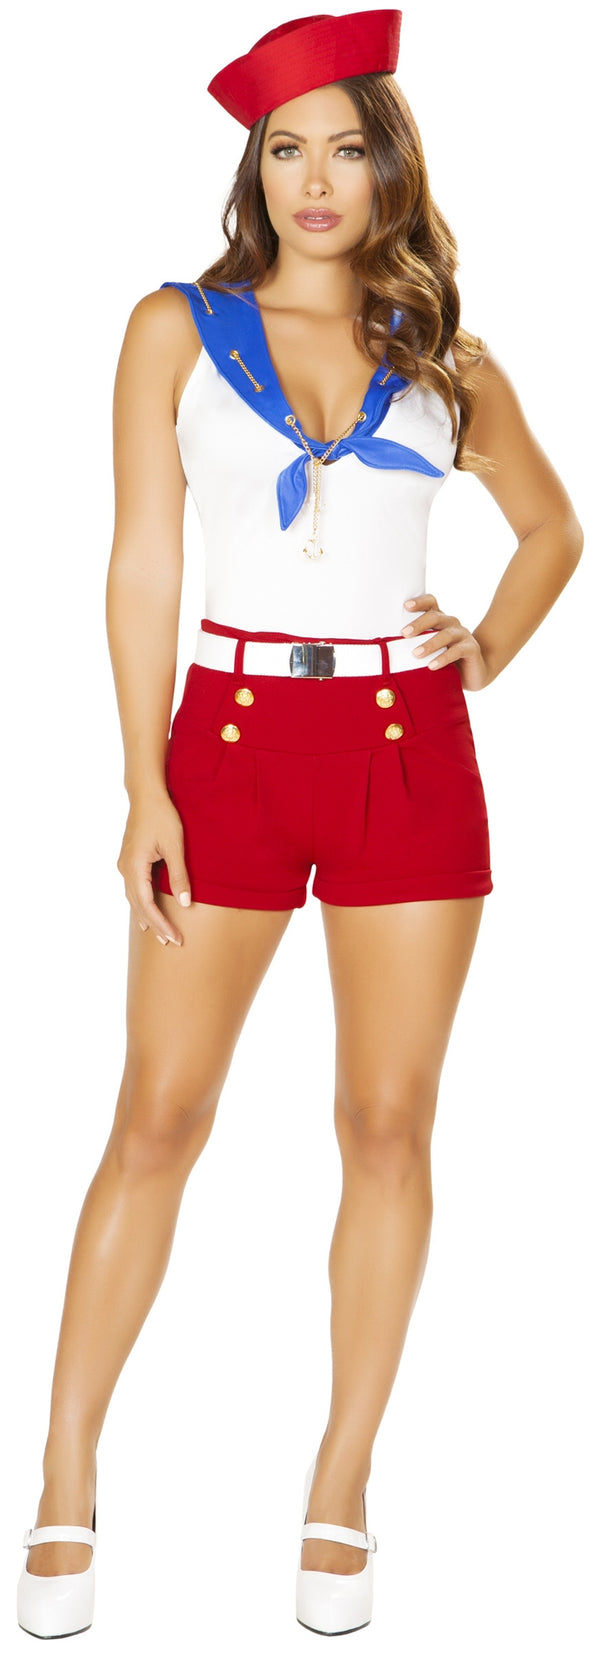 RM-4861 Roma Costume Ahoy Sailor costume front